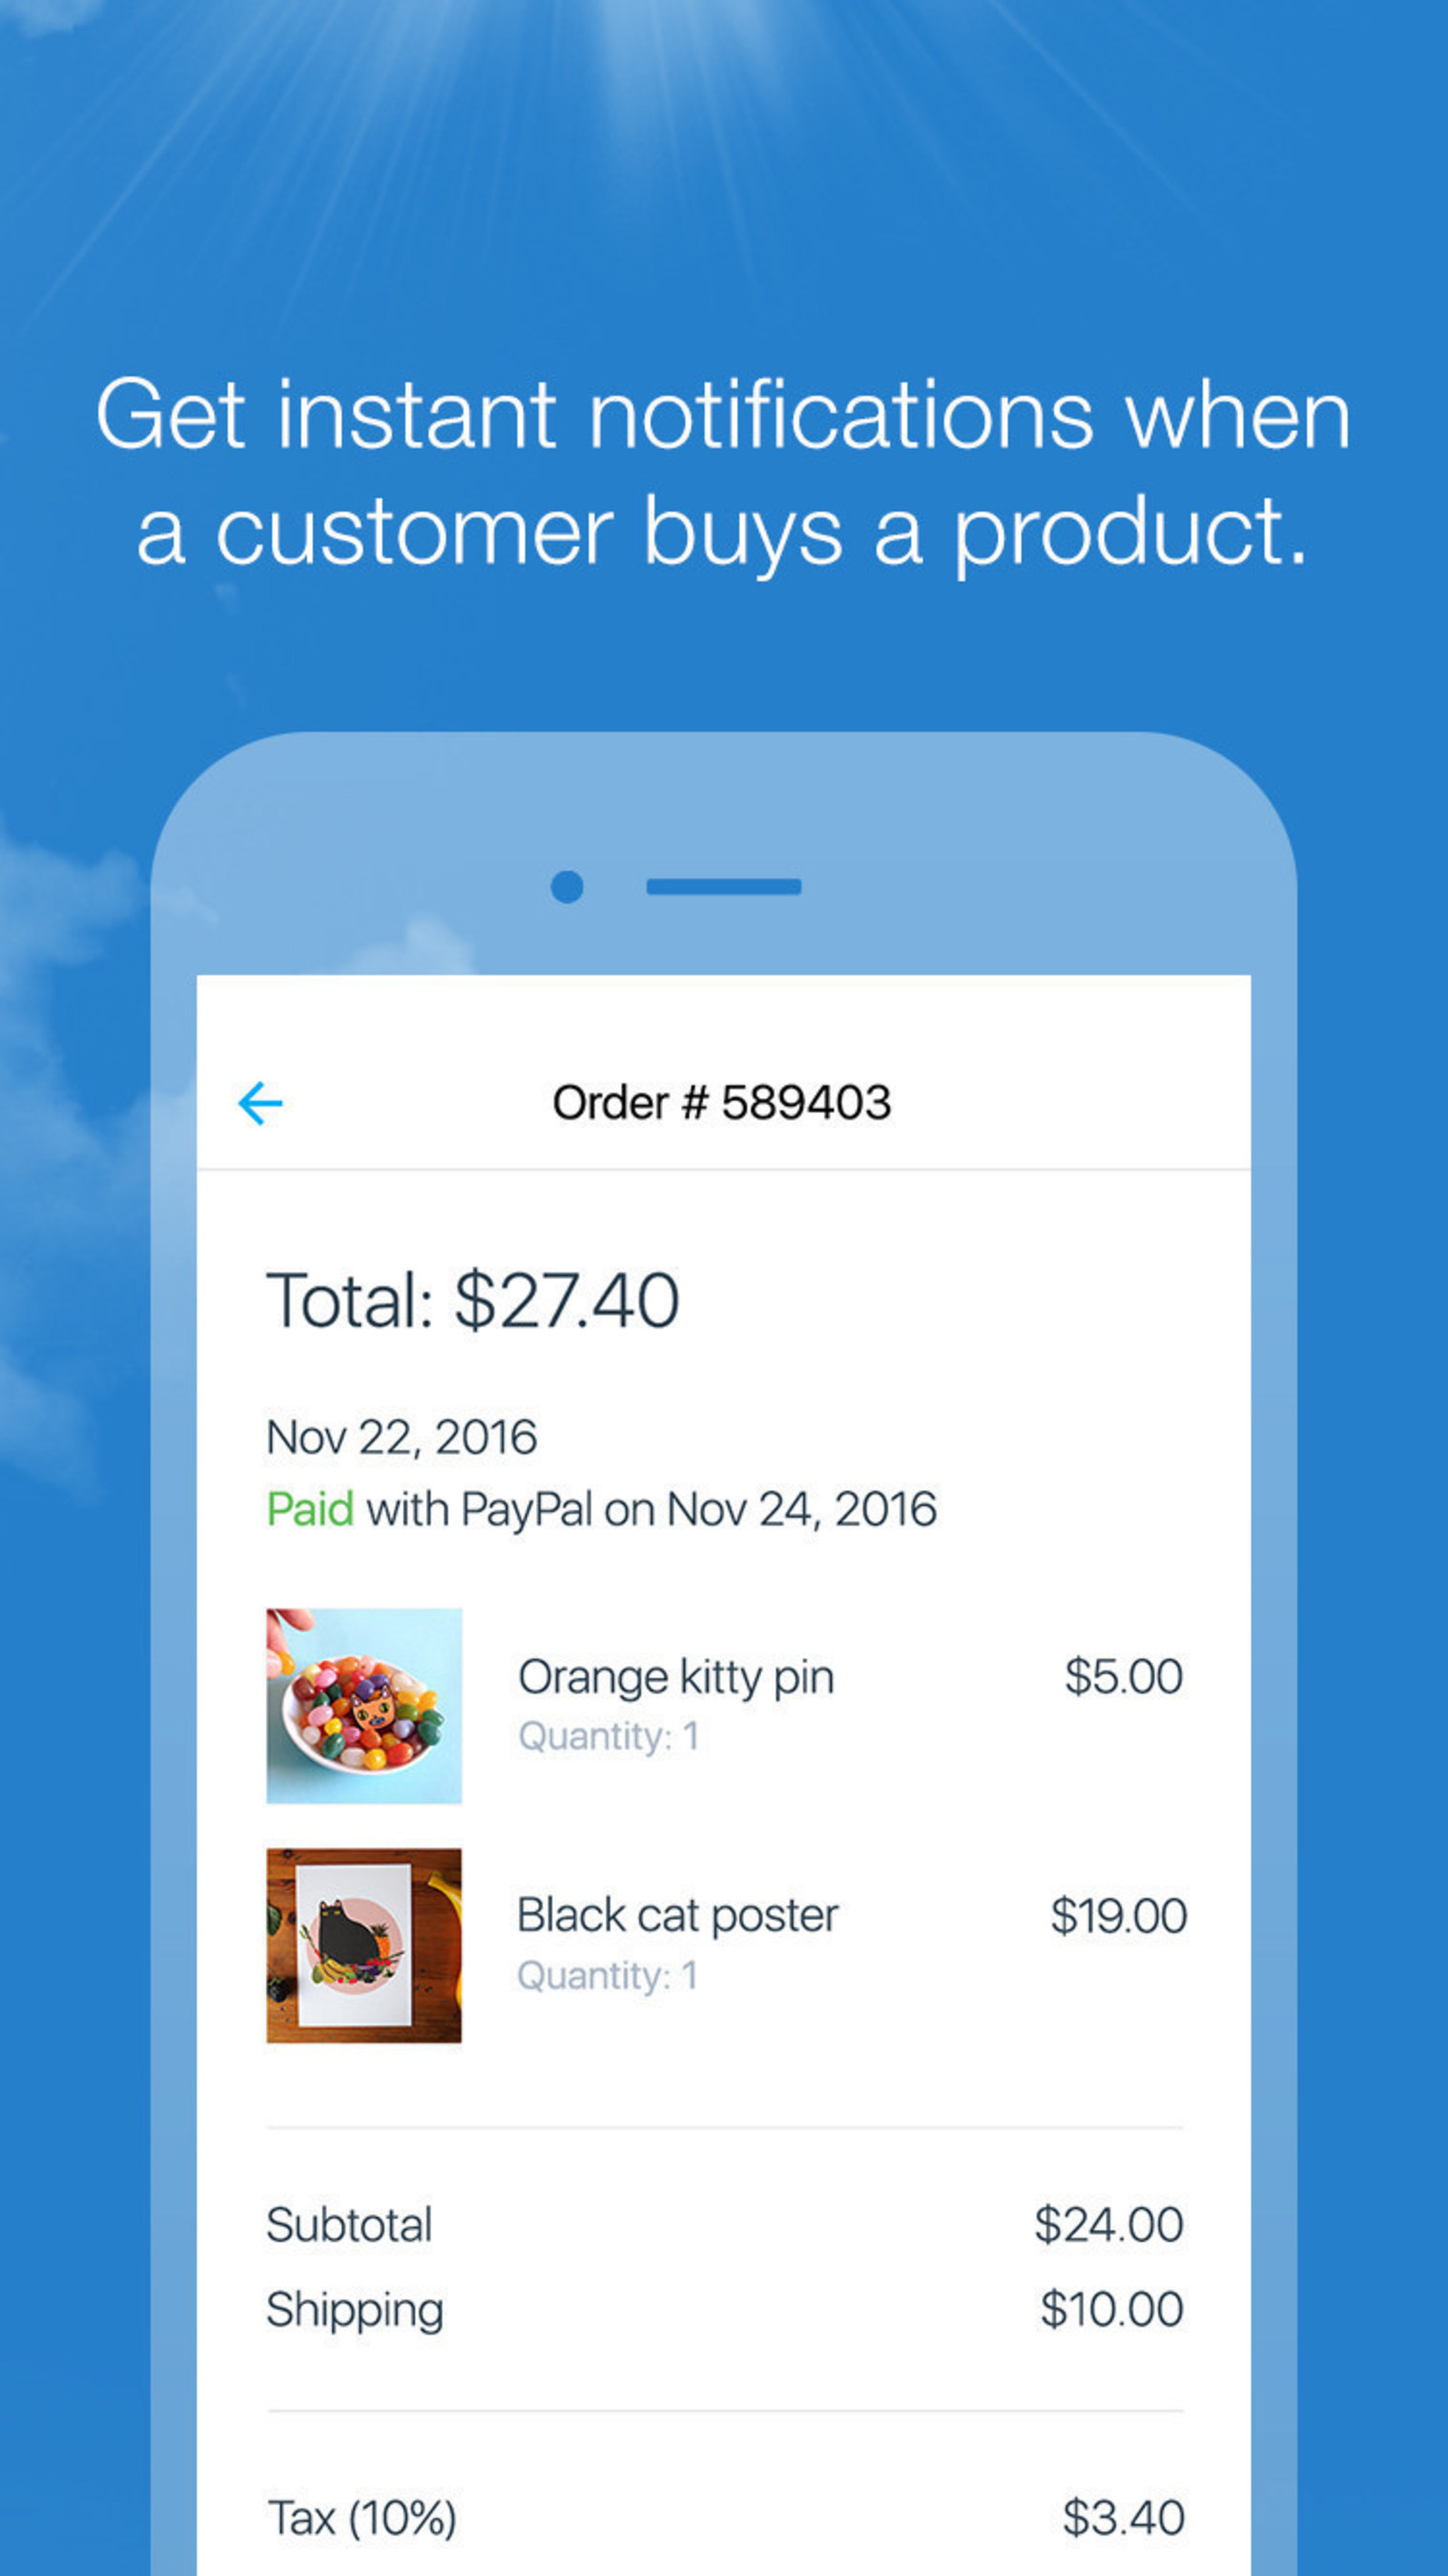 Manage Your Store - Snap a product photo and add it to your online store with just a click